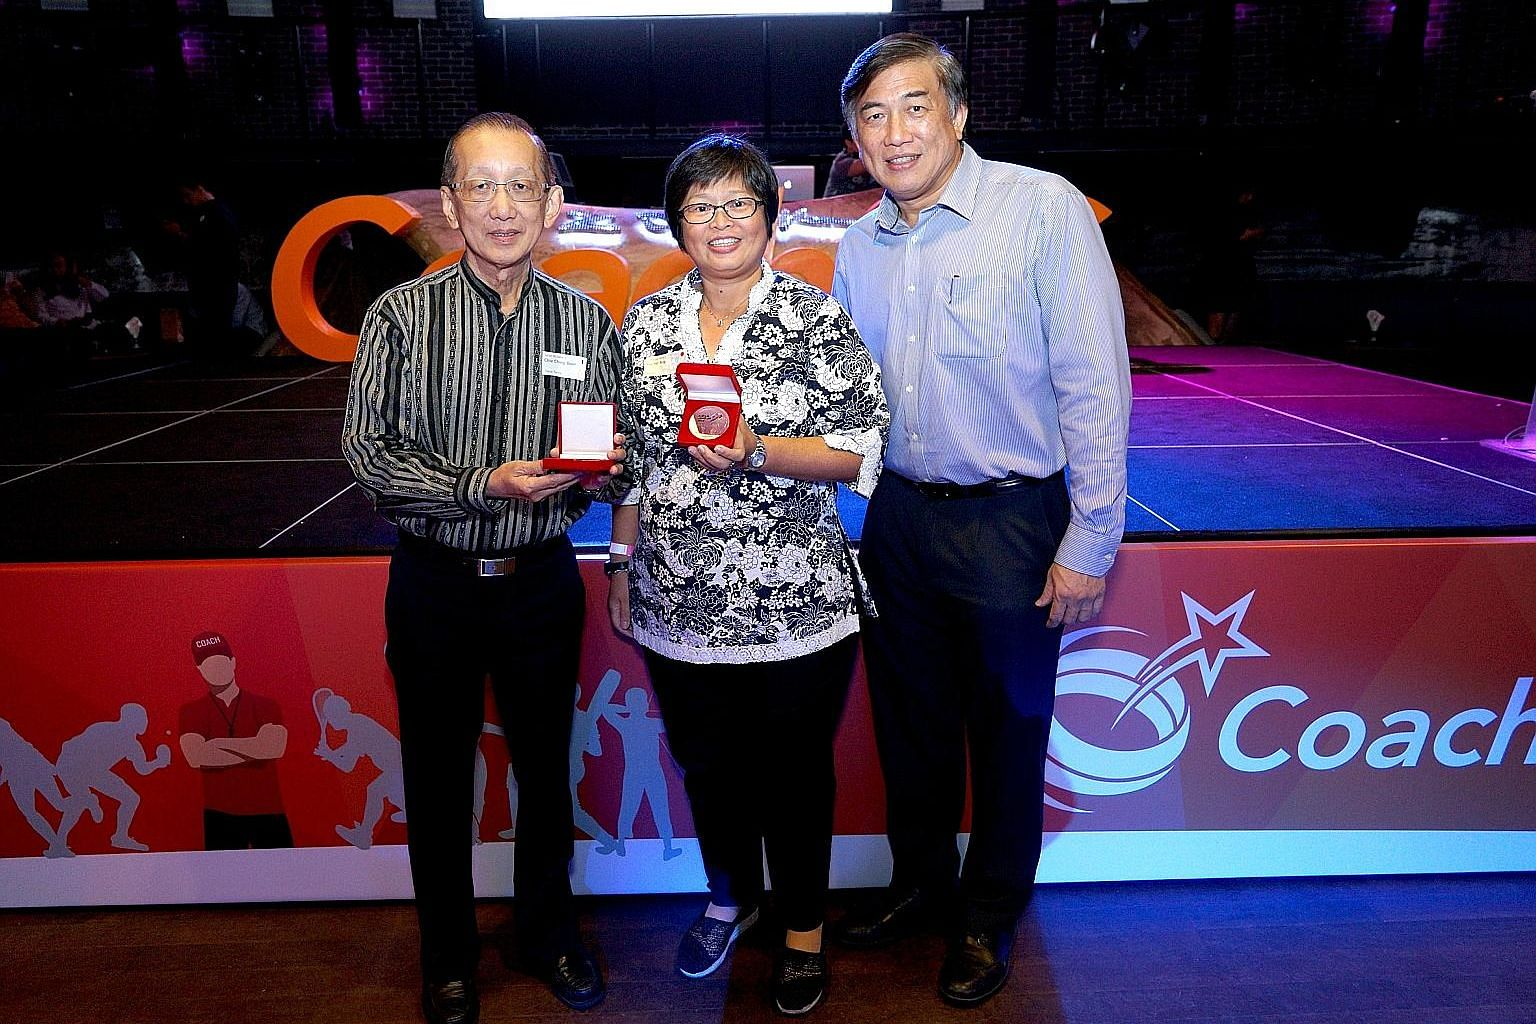 Former table tennis coach Chia Chong Boon and archery coach Rachel Sng were among 105 coaches recognised at the inaugural Coaches Appreciation Night. With them is SportSG CEO Lim Teck Yin.